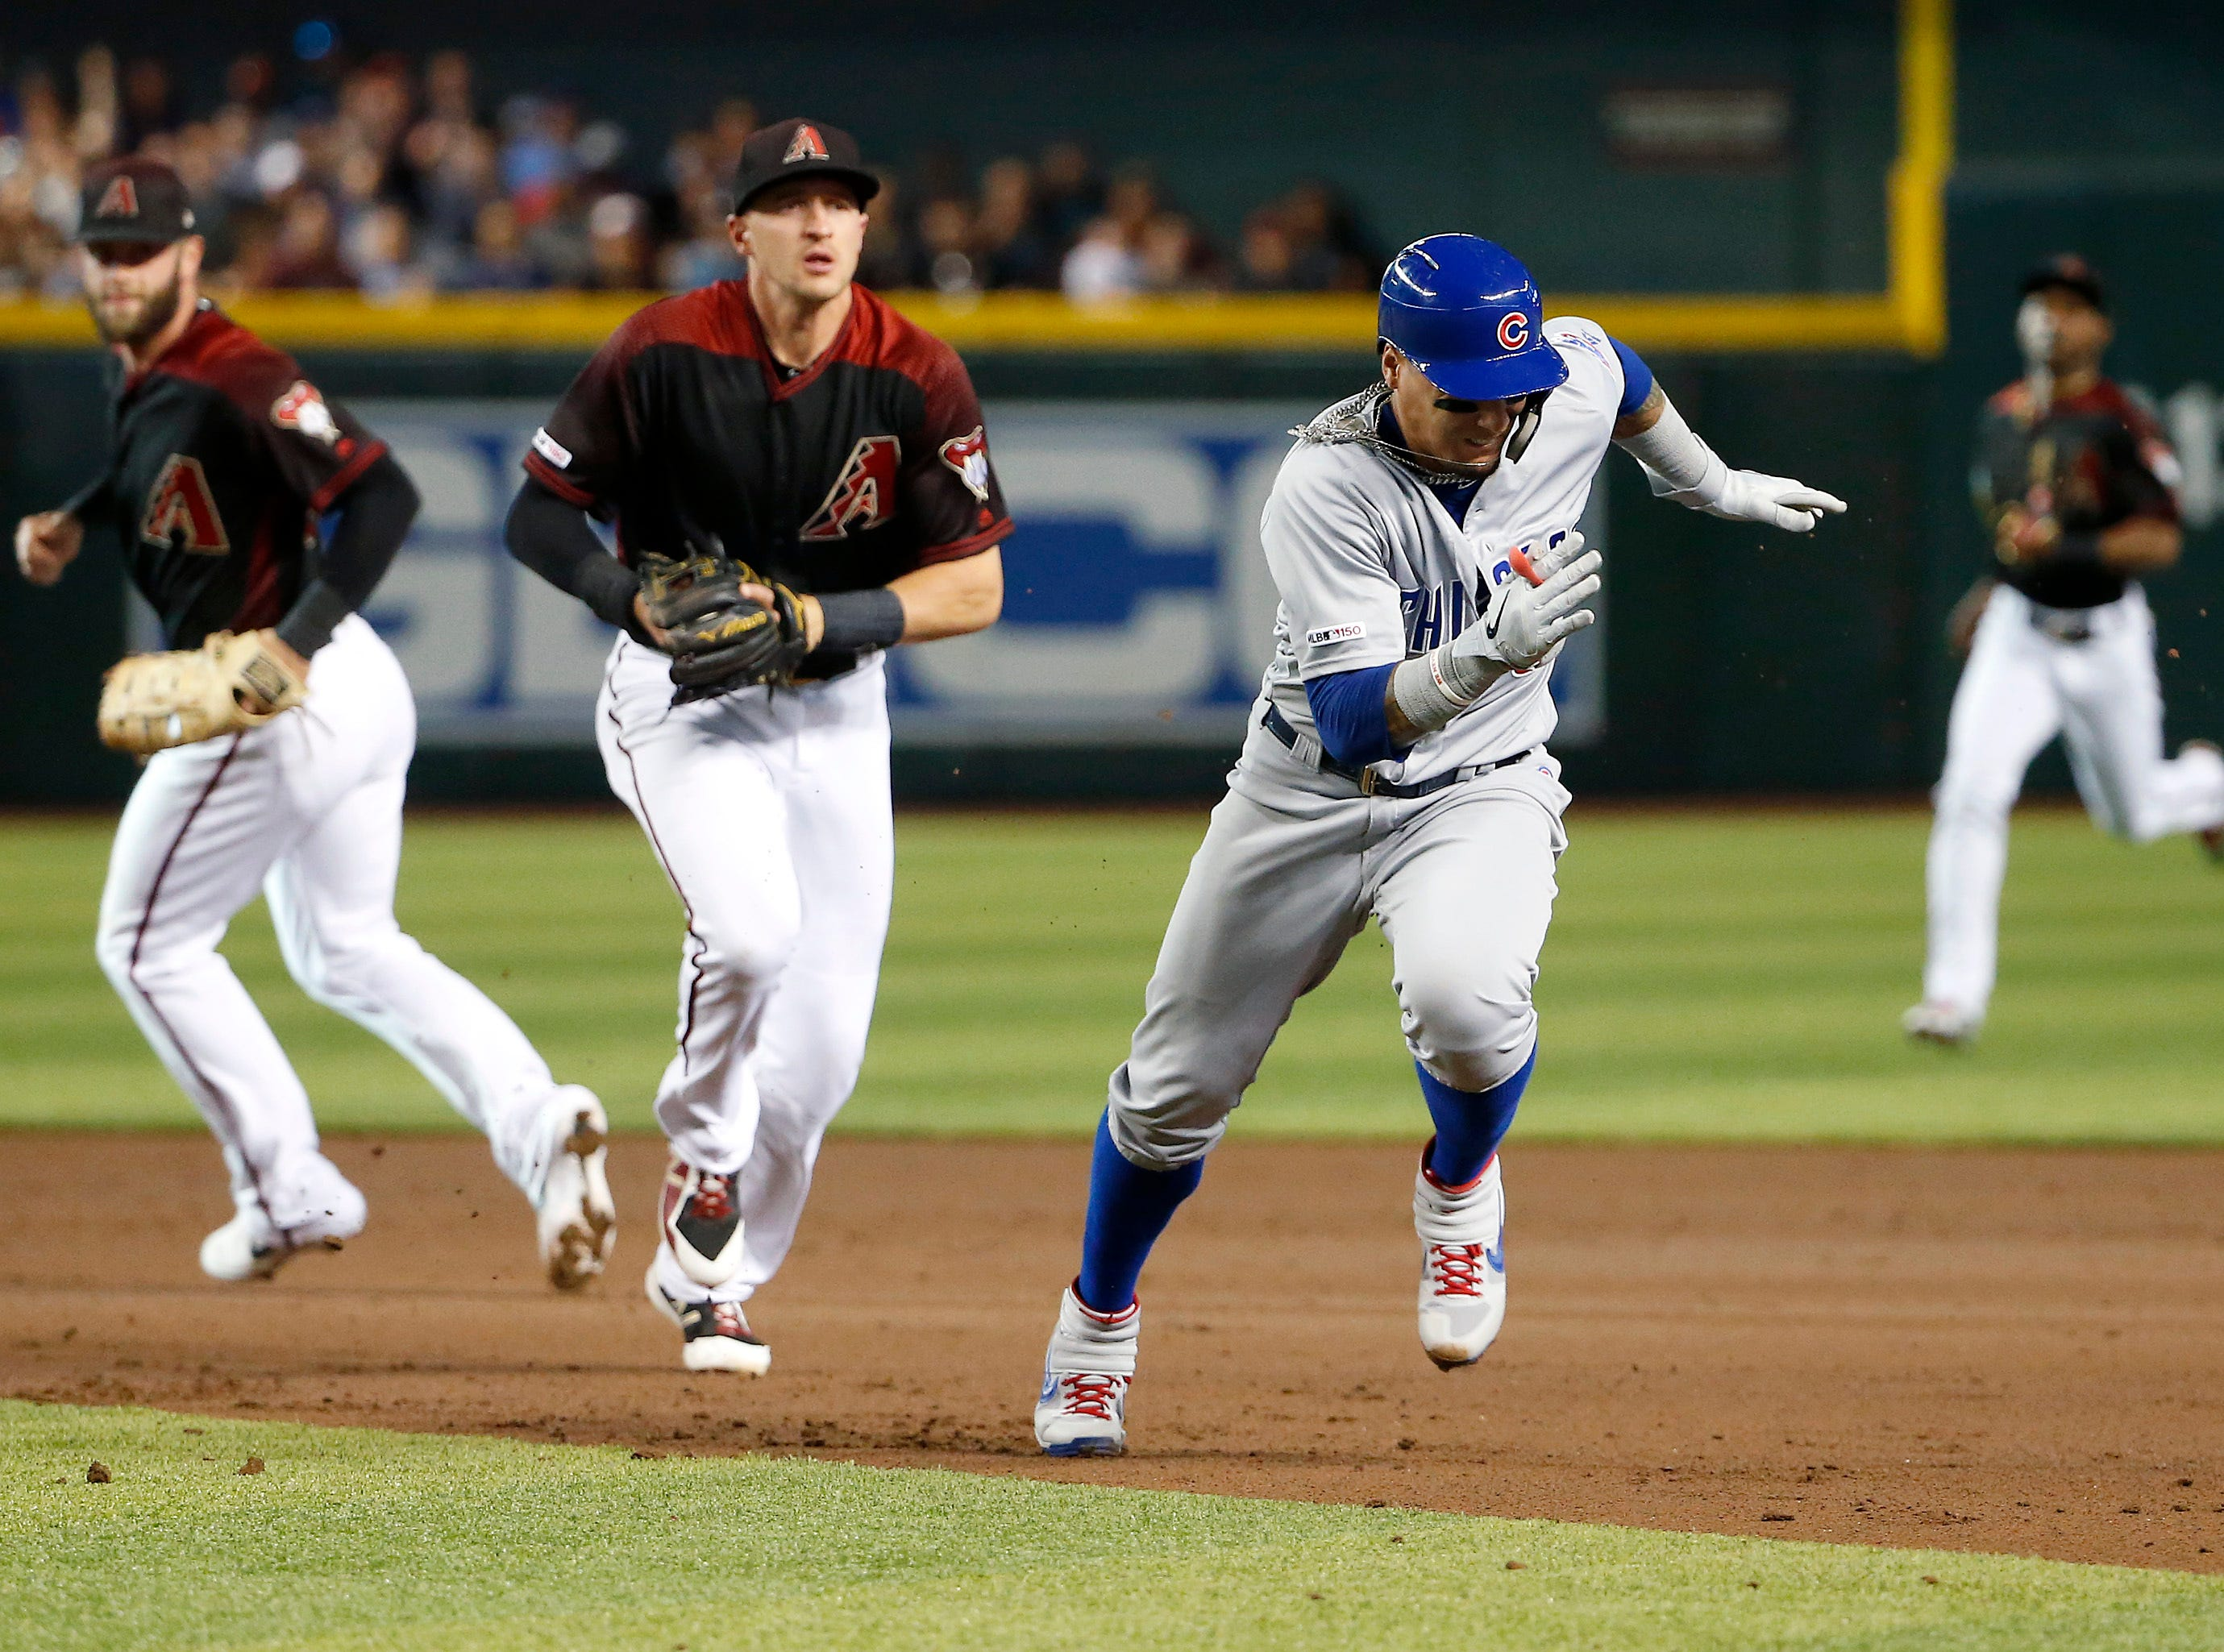 Chicago Cubs' Javier Baez, right, is chased by Arizona Diamondbacks shortstop Nick Ahmed, center, as he gets caught in a run-down during the second inning of a baseball game, Saturday, April 27, 2019, in Phoenix. Baez was out on the play. (AP Photo/Ralph Freso)